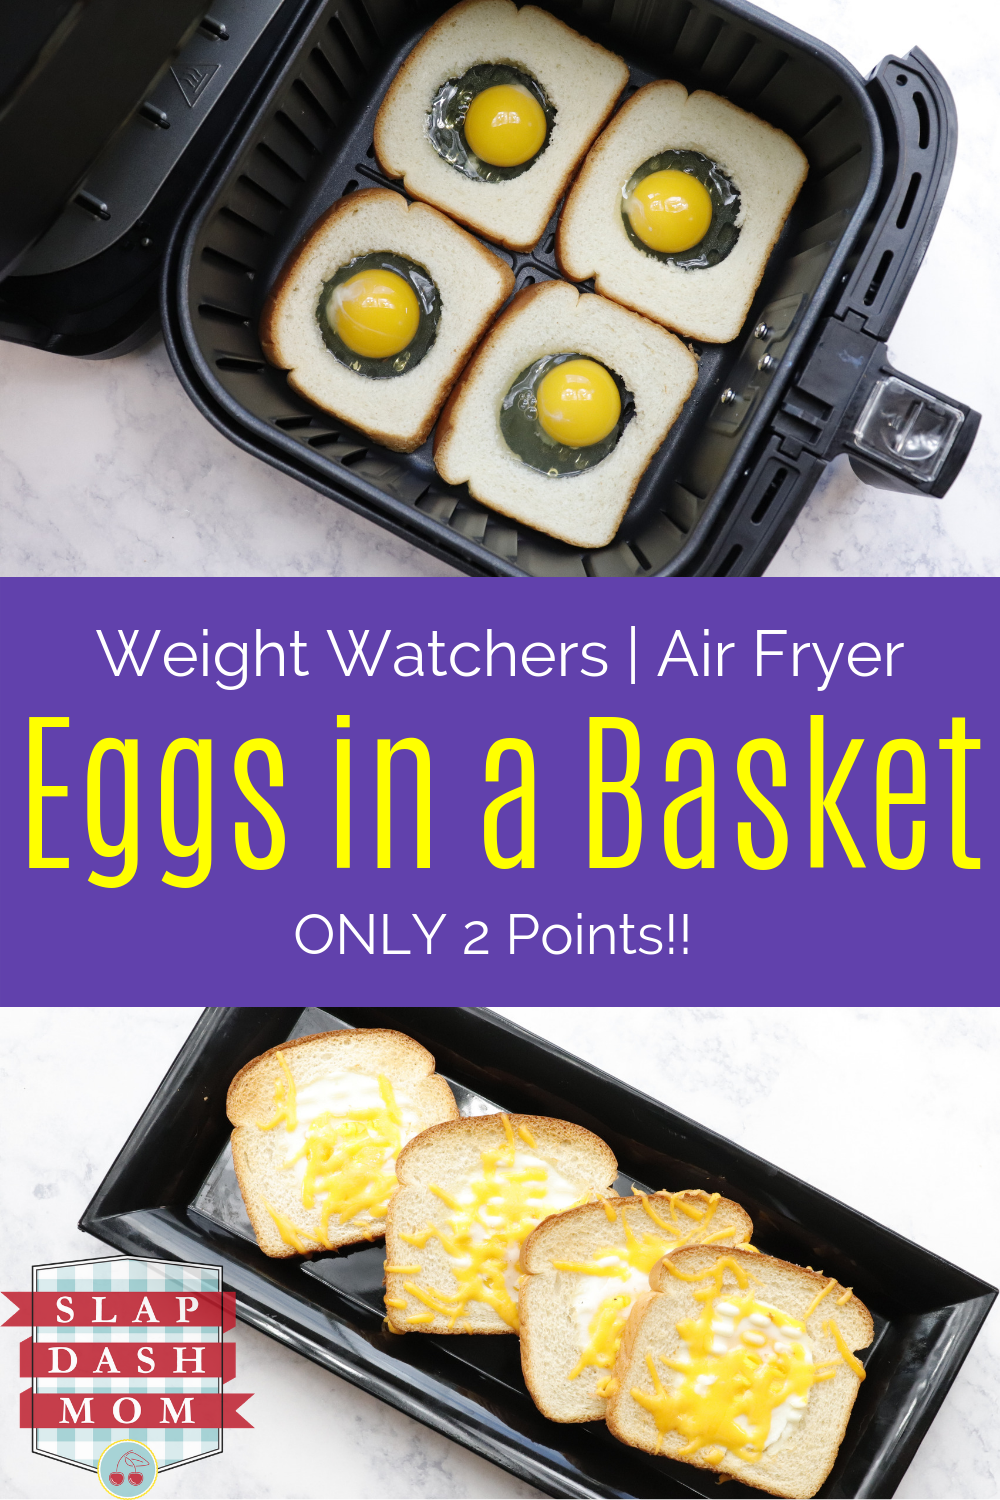 Air Fryer Eggs in a Blanket Recipe Air fryer recipes